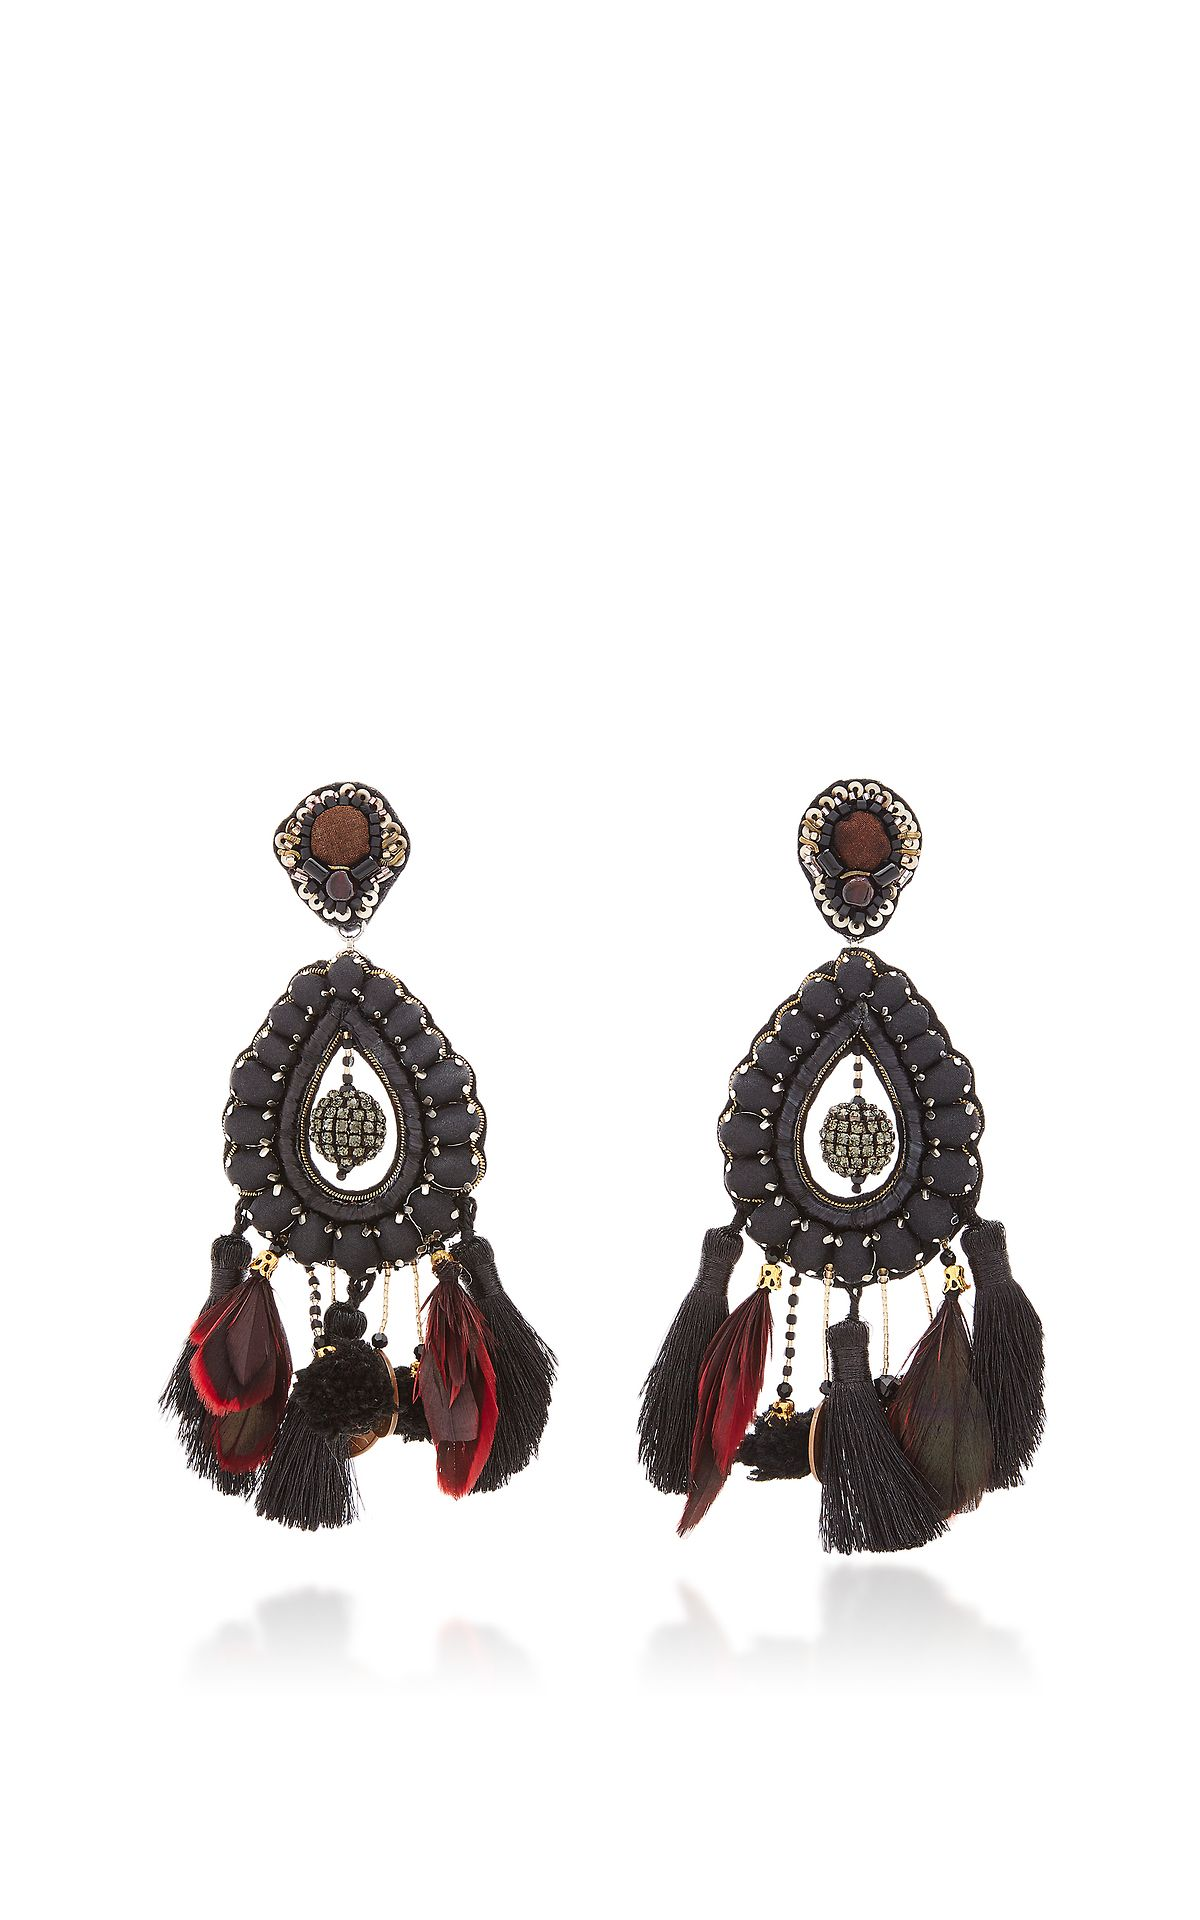 https://www.modaoperandi.com/ranjana-khan-fw17/black-teardrop-earrings?size=OS ☆ https://es.pinterest.com/iolandapujol/pins/ ☆ insta: @ iola_pujol / @iolastyle